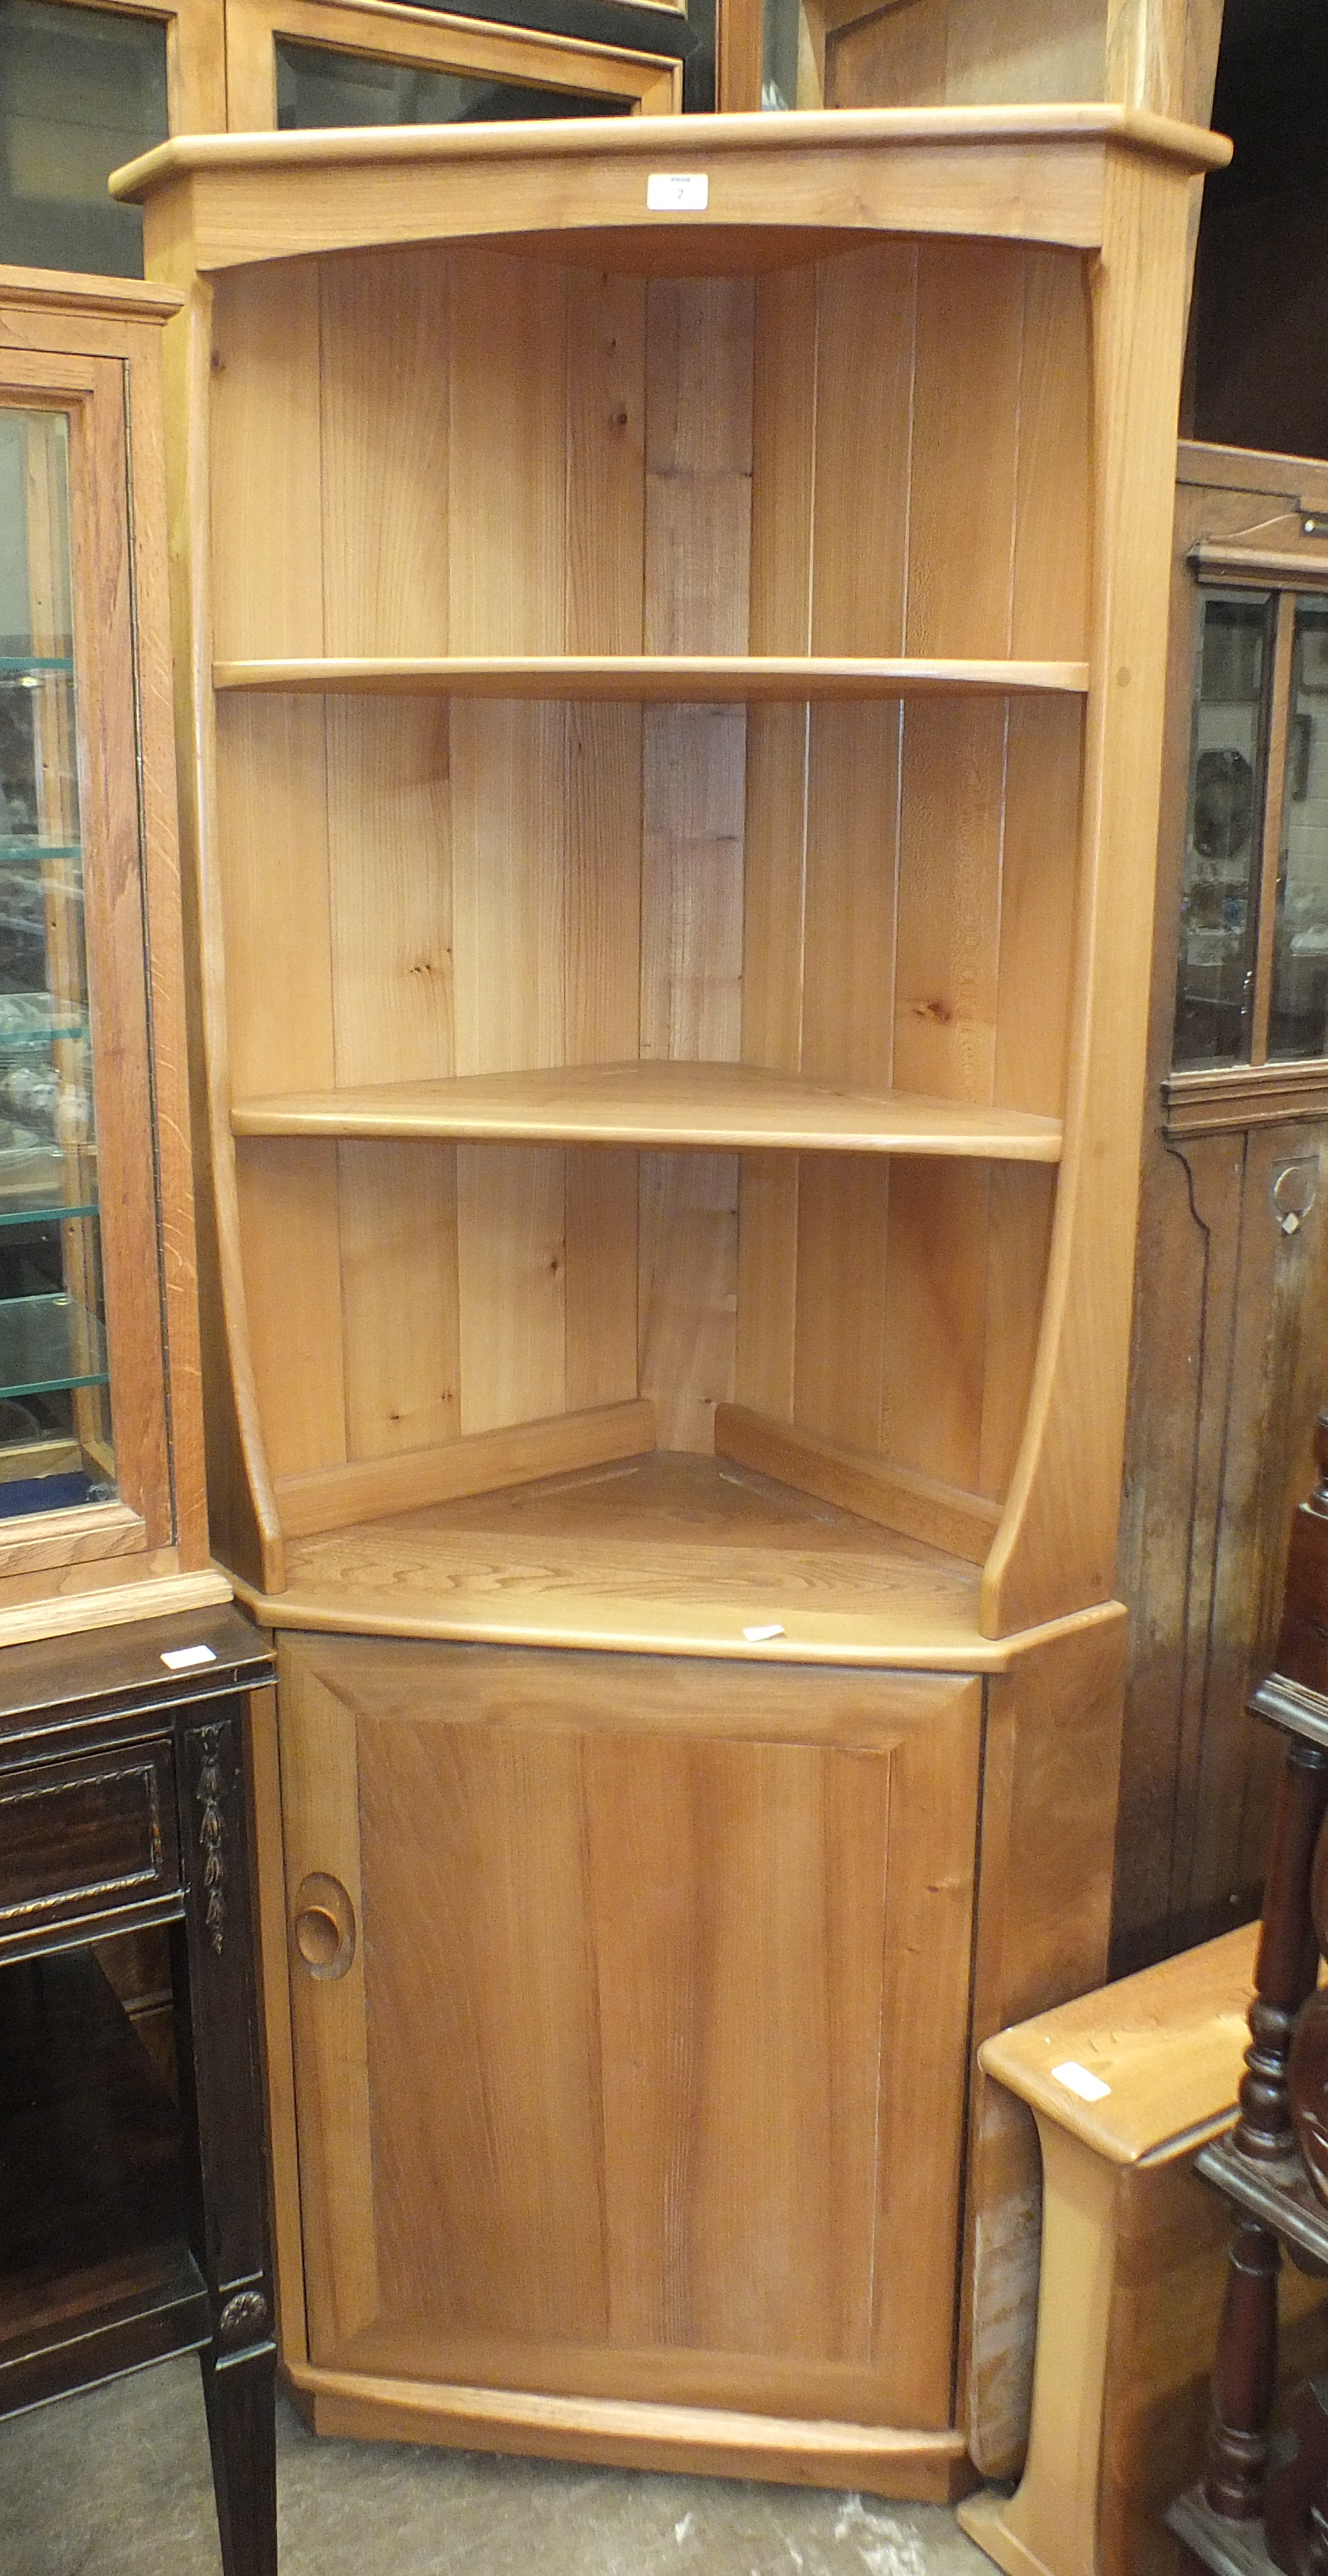 An Ercol light wood corner shelf unit/cabinet, 76cm wide, 179cm high and a small Ercol-style drop-